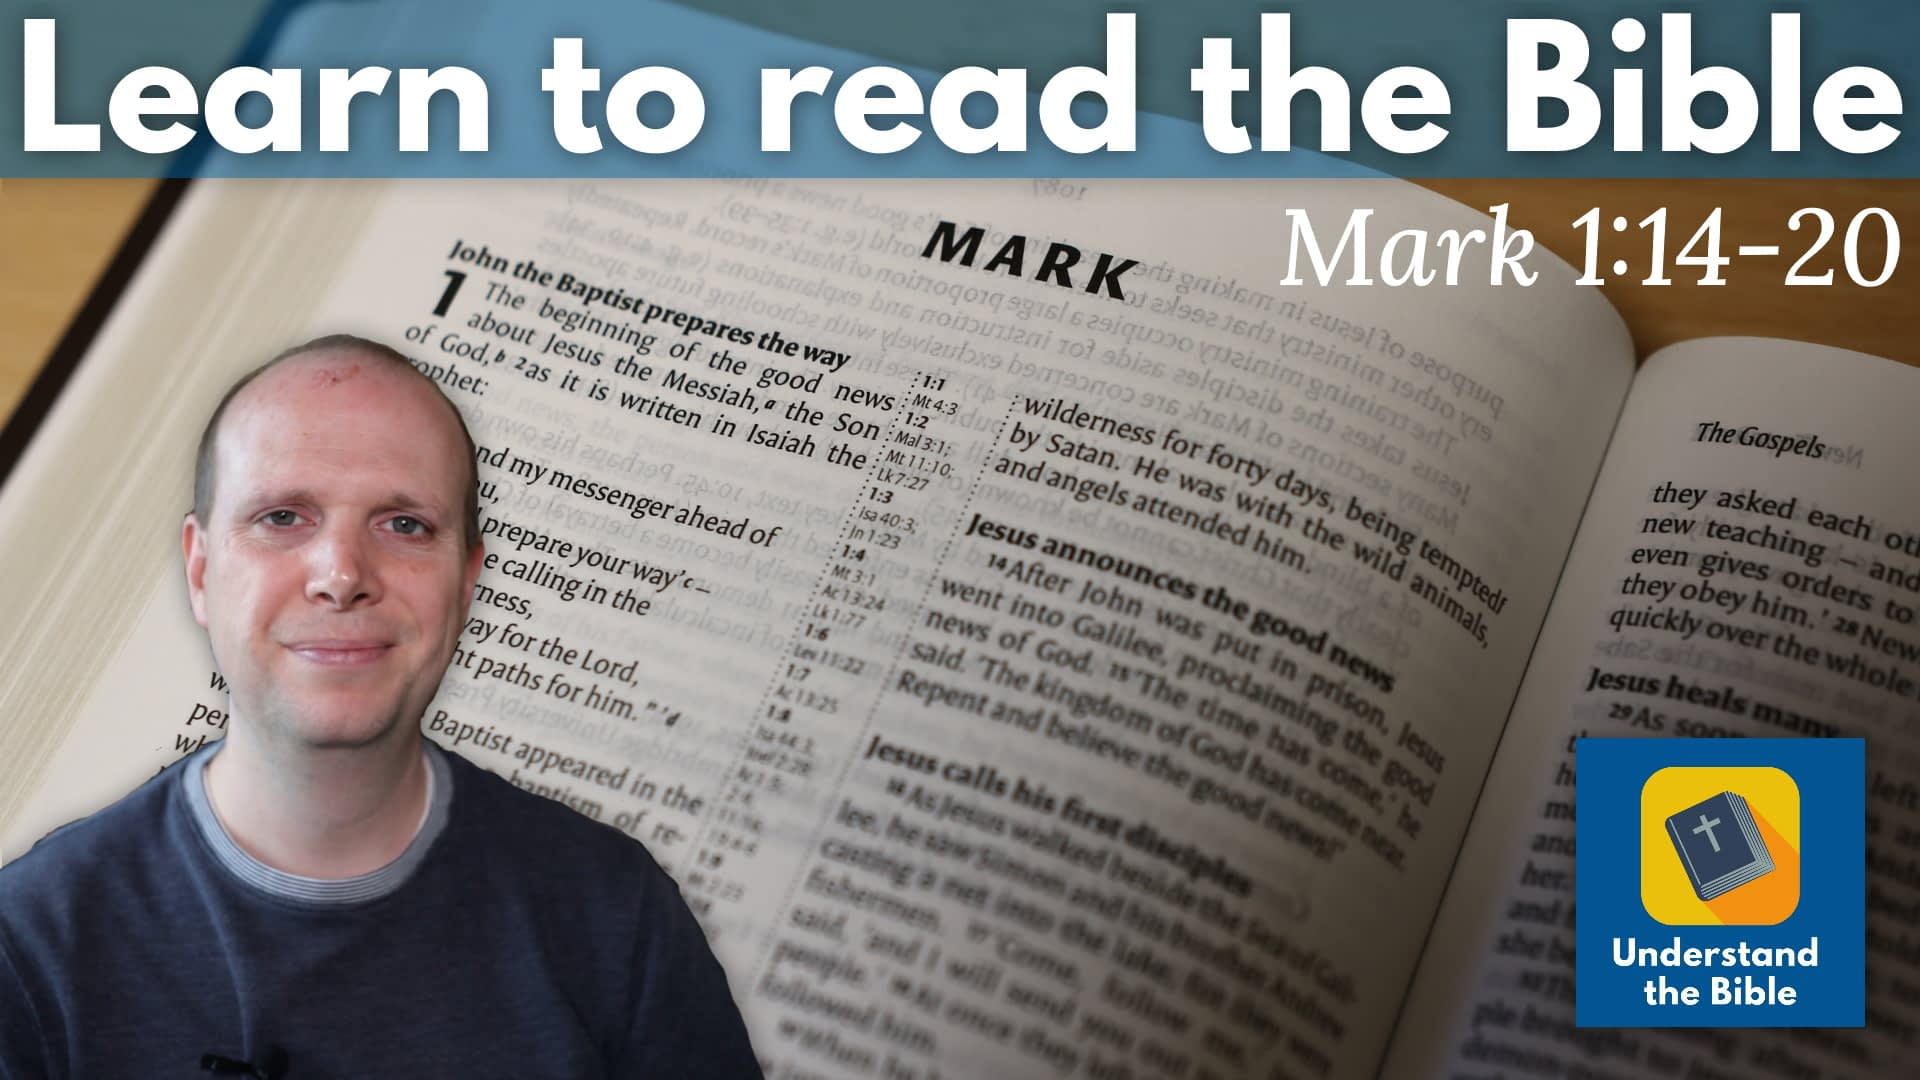 Mark 1:14-20: Learn to read the Bible #3